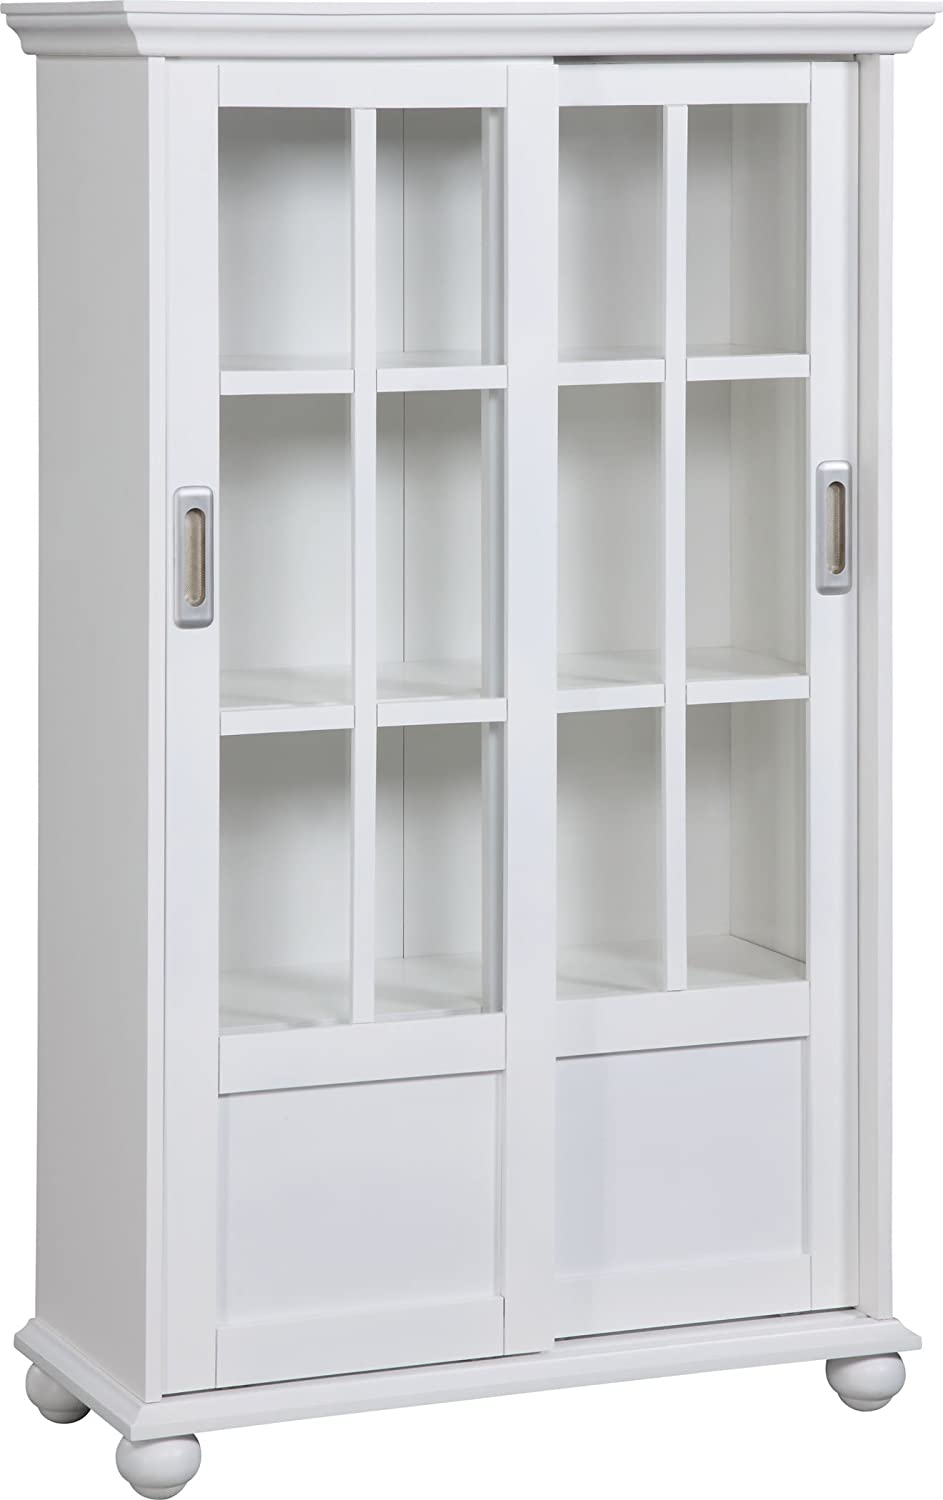 Amazon com altra 9448096 bookcase with sliding glass doors white kitchen dining